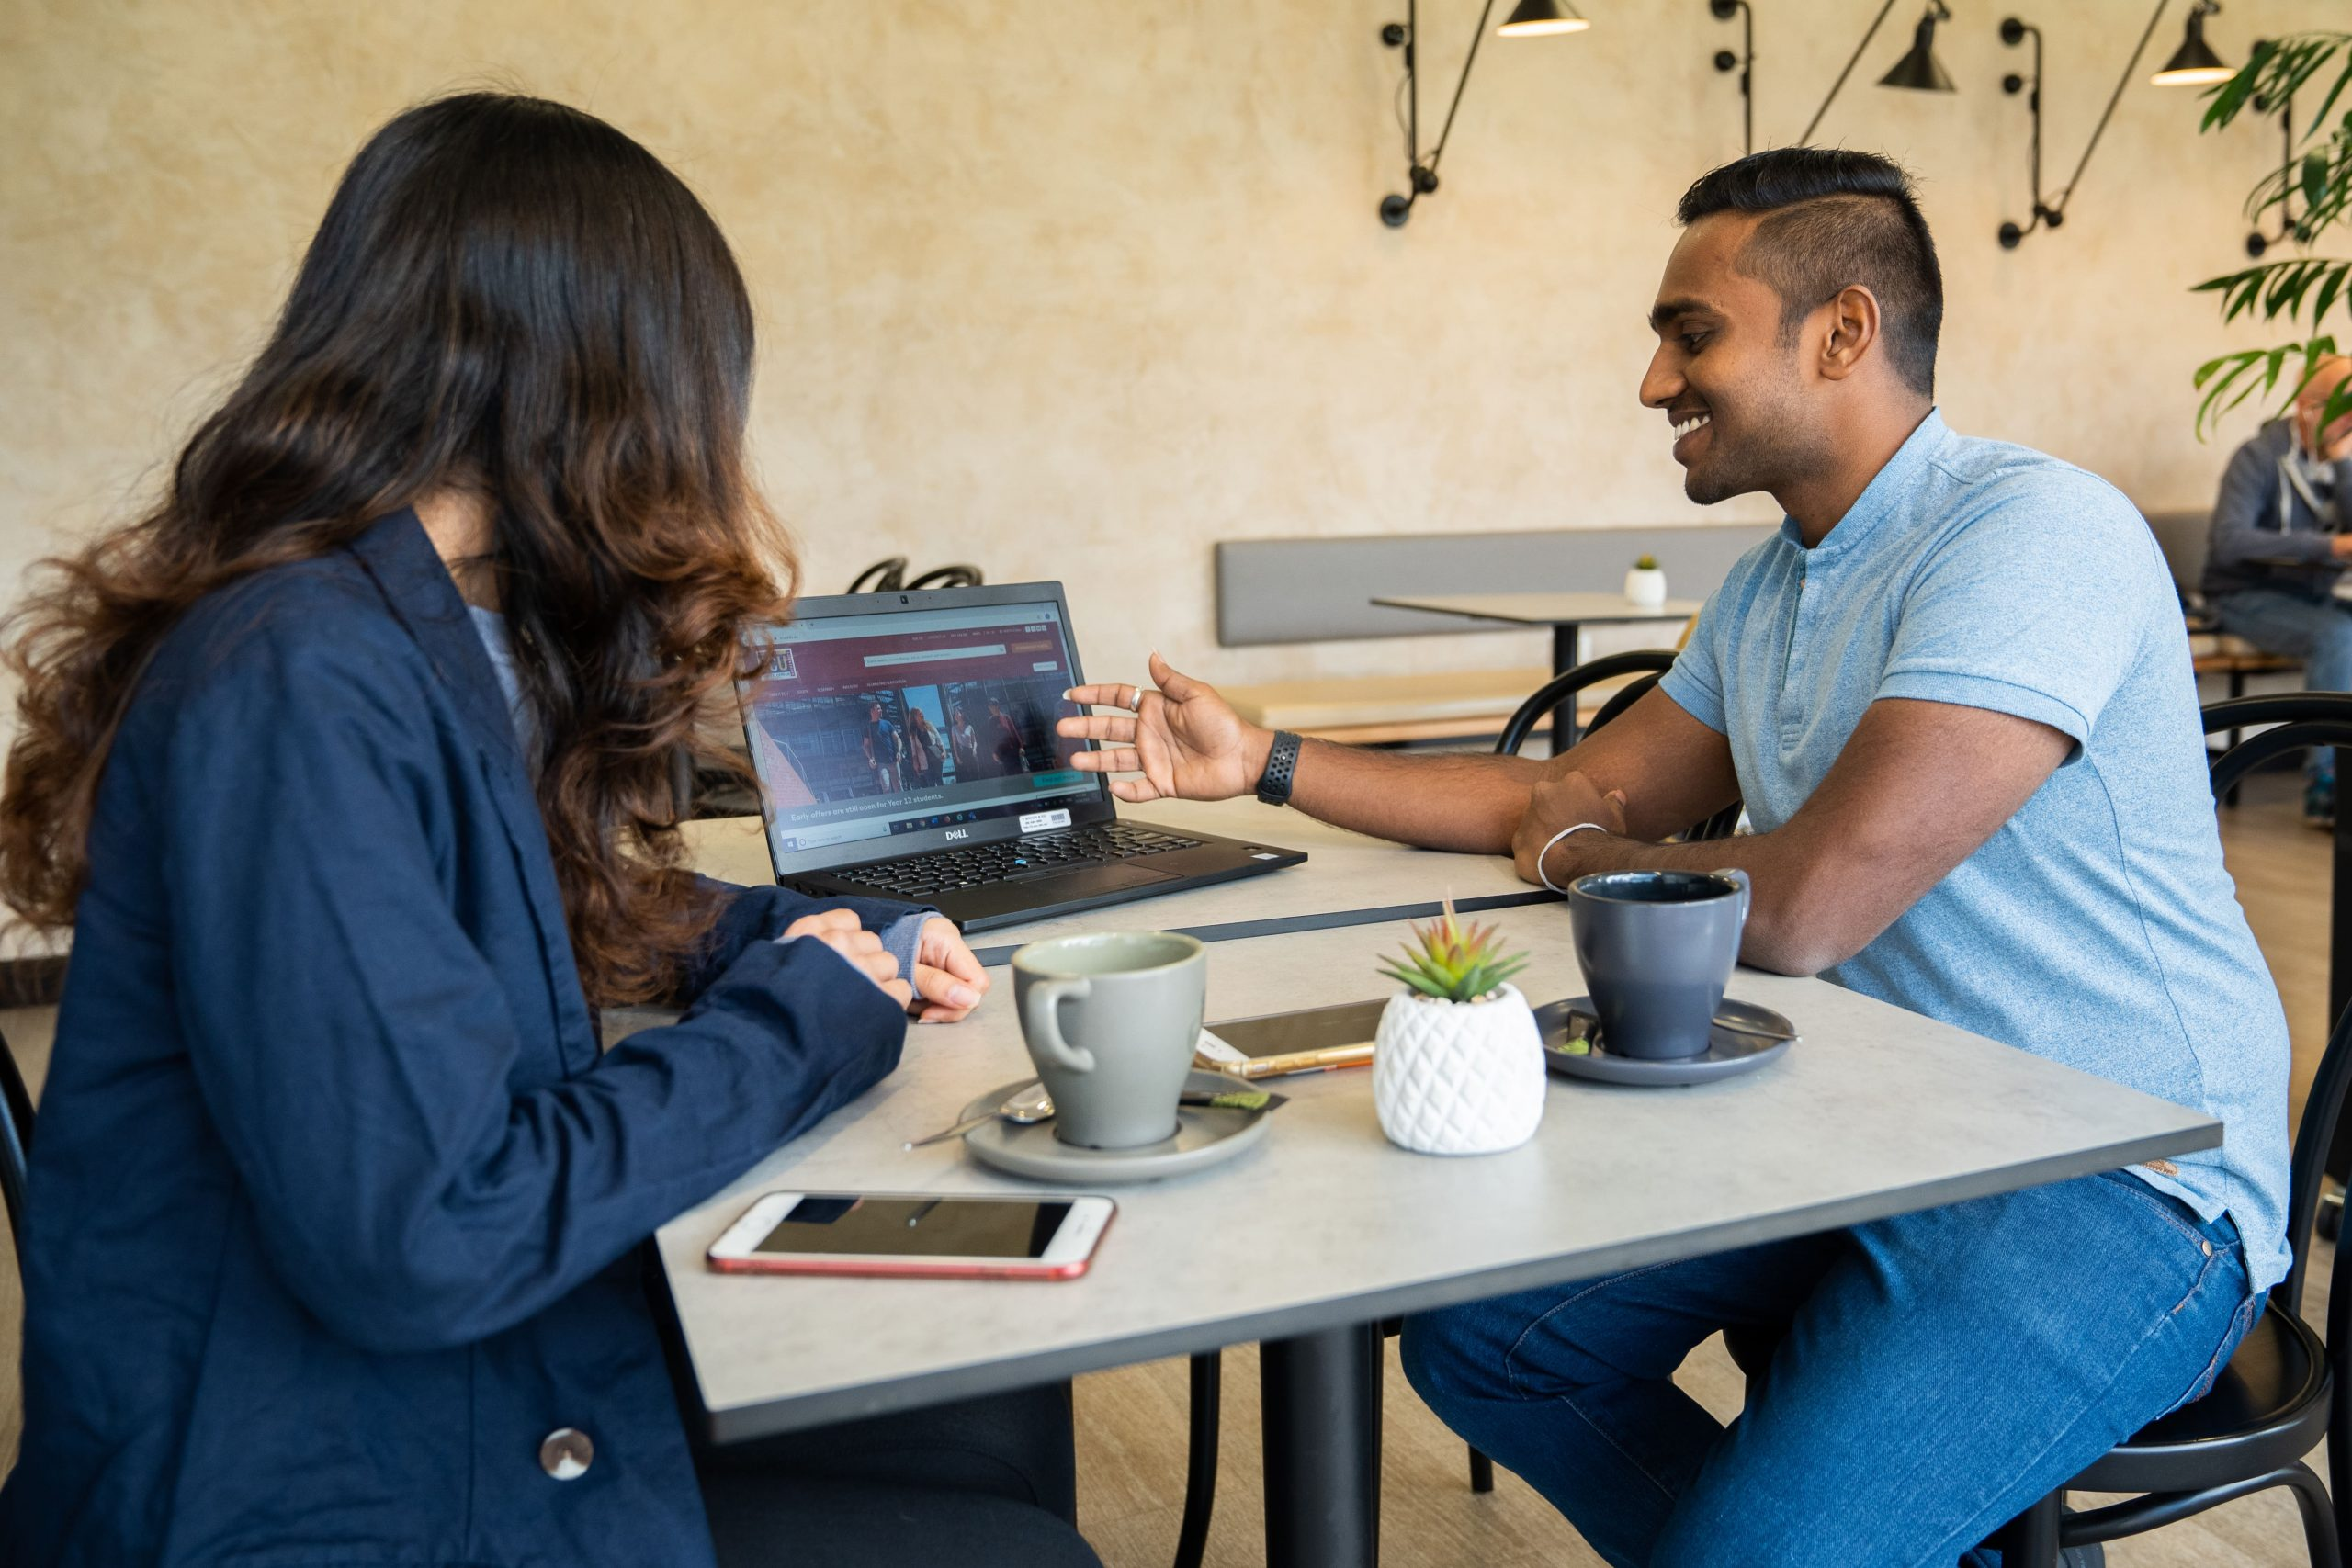 Two students sitting in a cafe working together on a laptop